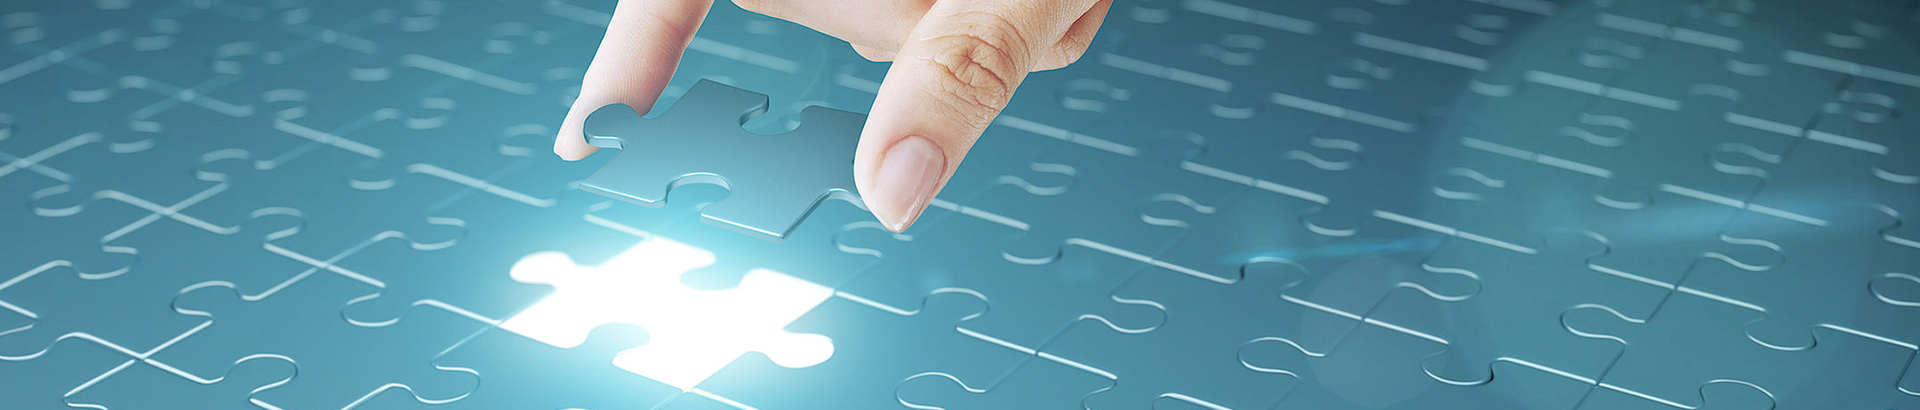 The Development Trend of Optoelectronic Materials and Component Manufacturing